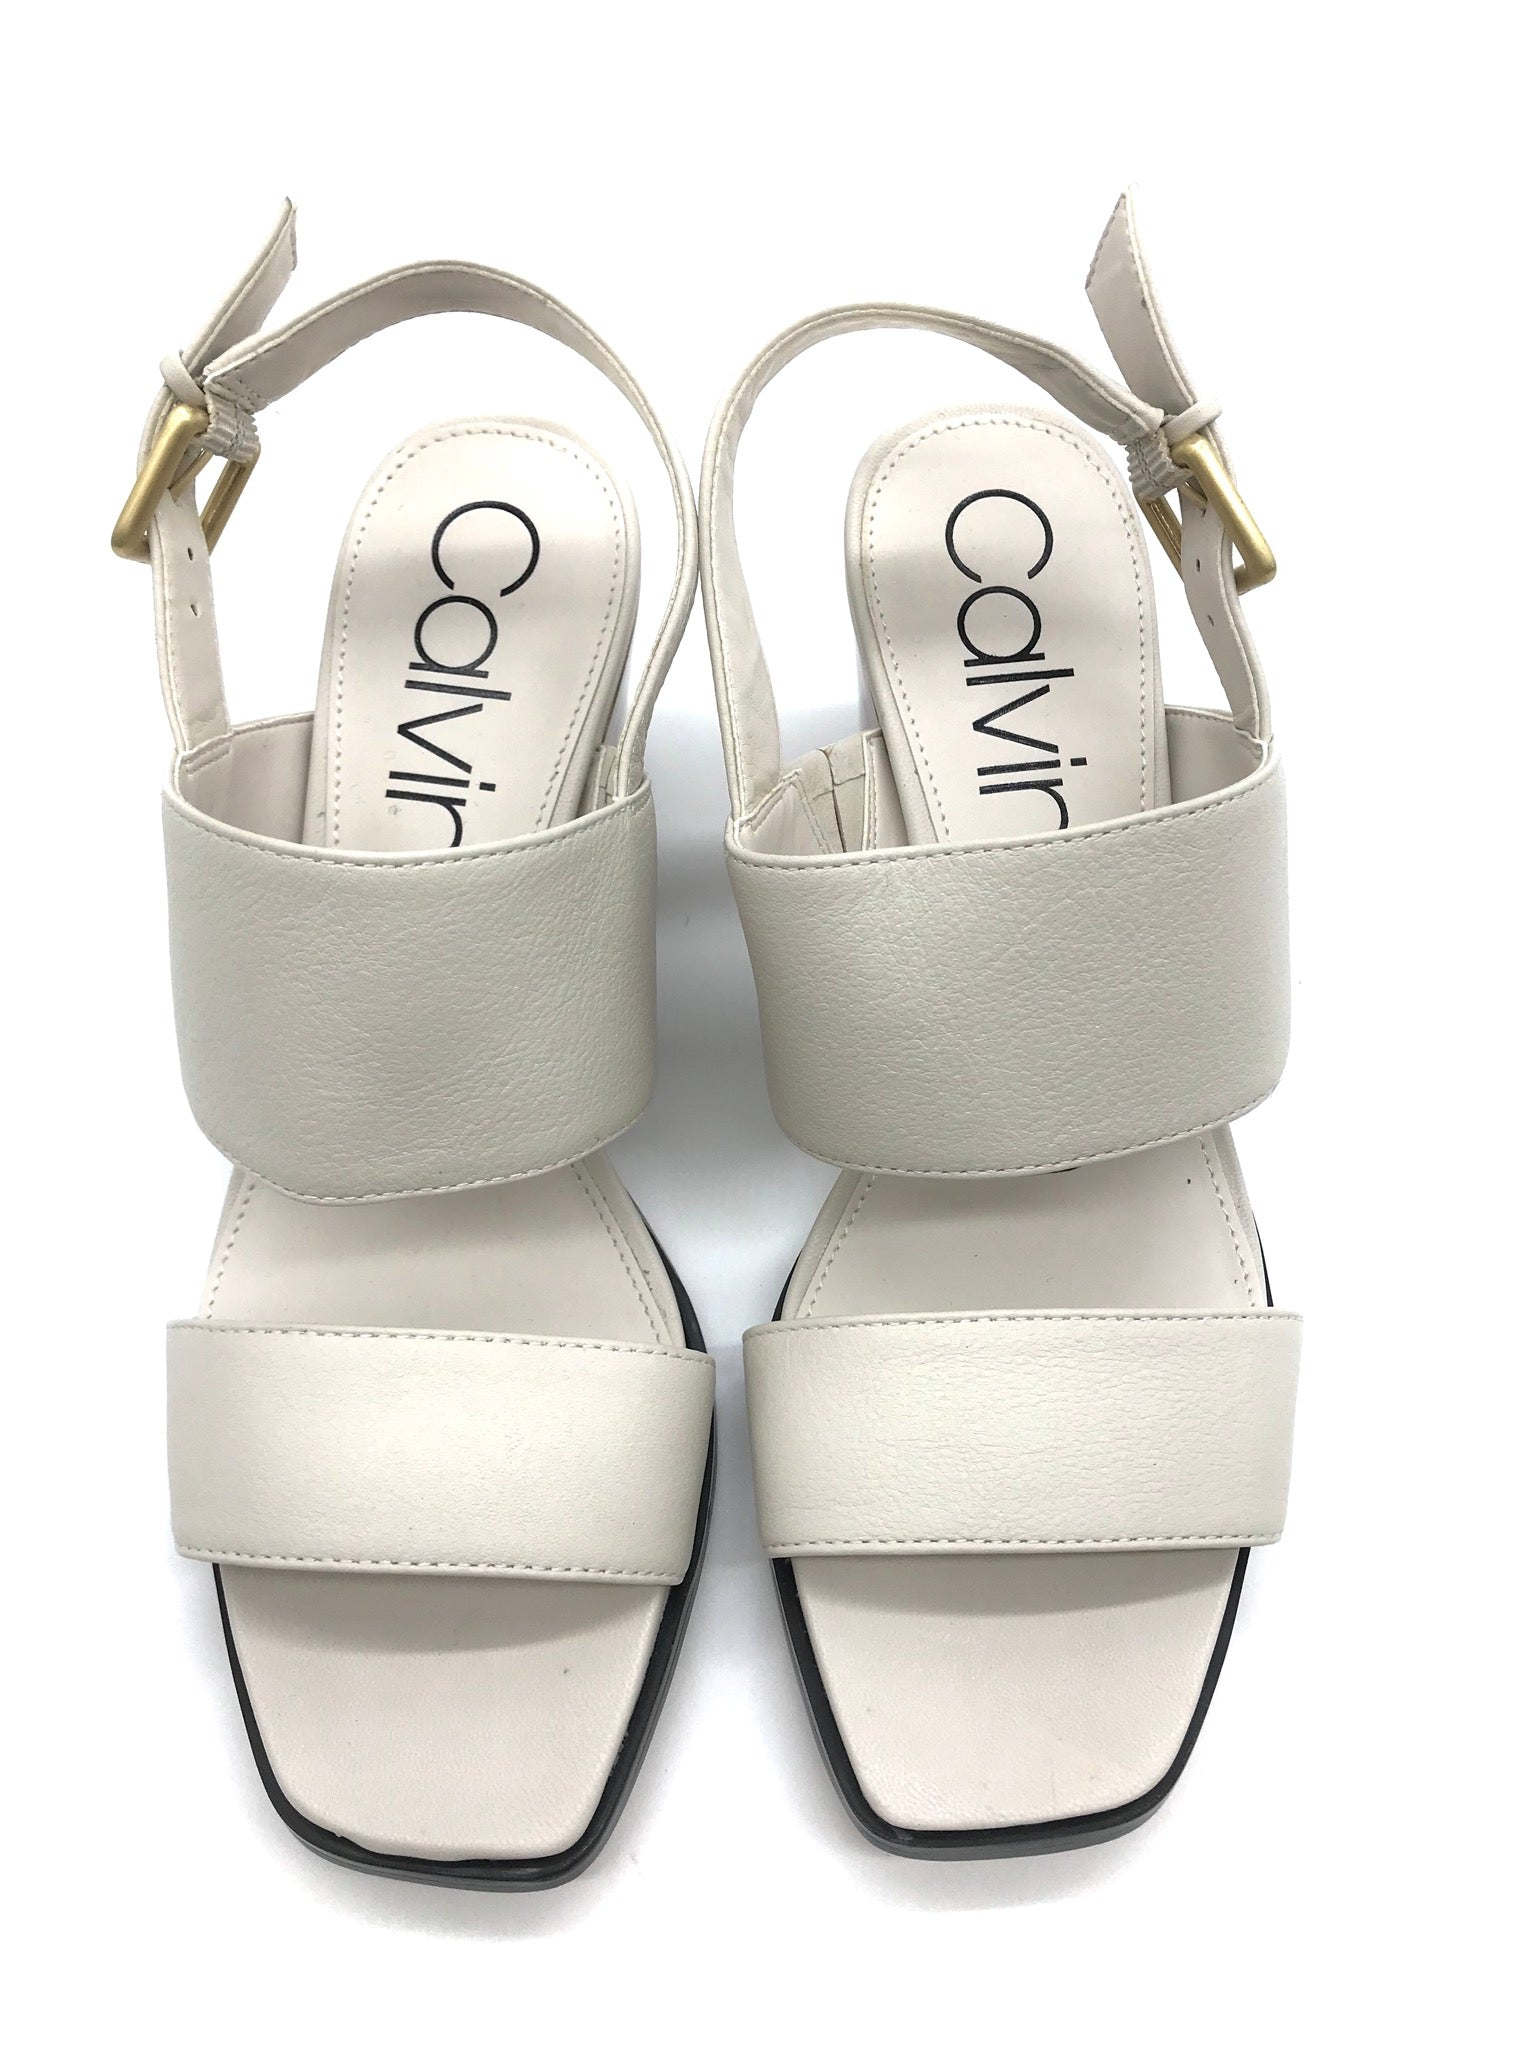 Primary Photo - BRAND: CALVIN KLEIN <BR>STYLE: SANDALS LOW <BR>COLOR: BEIGE <BR>SIZE: 7 <BR>SKU: 262-26275-64396<BR>LIKE NEW CONDITION - AS IS